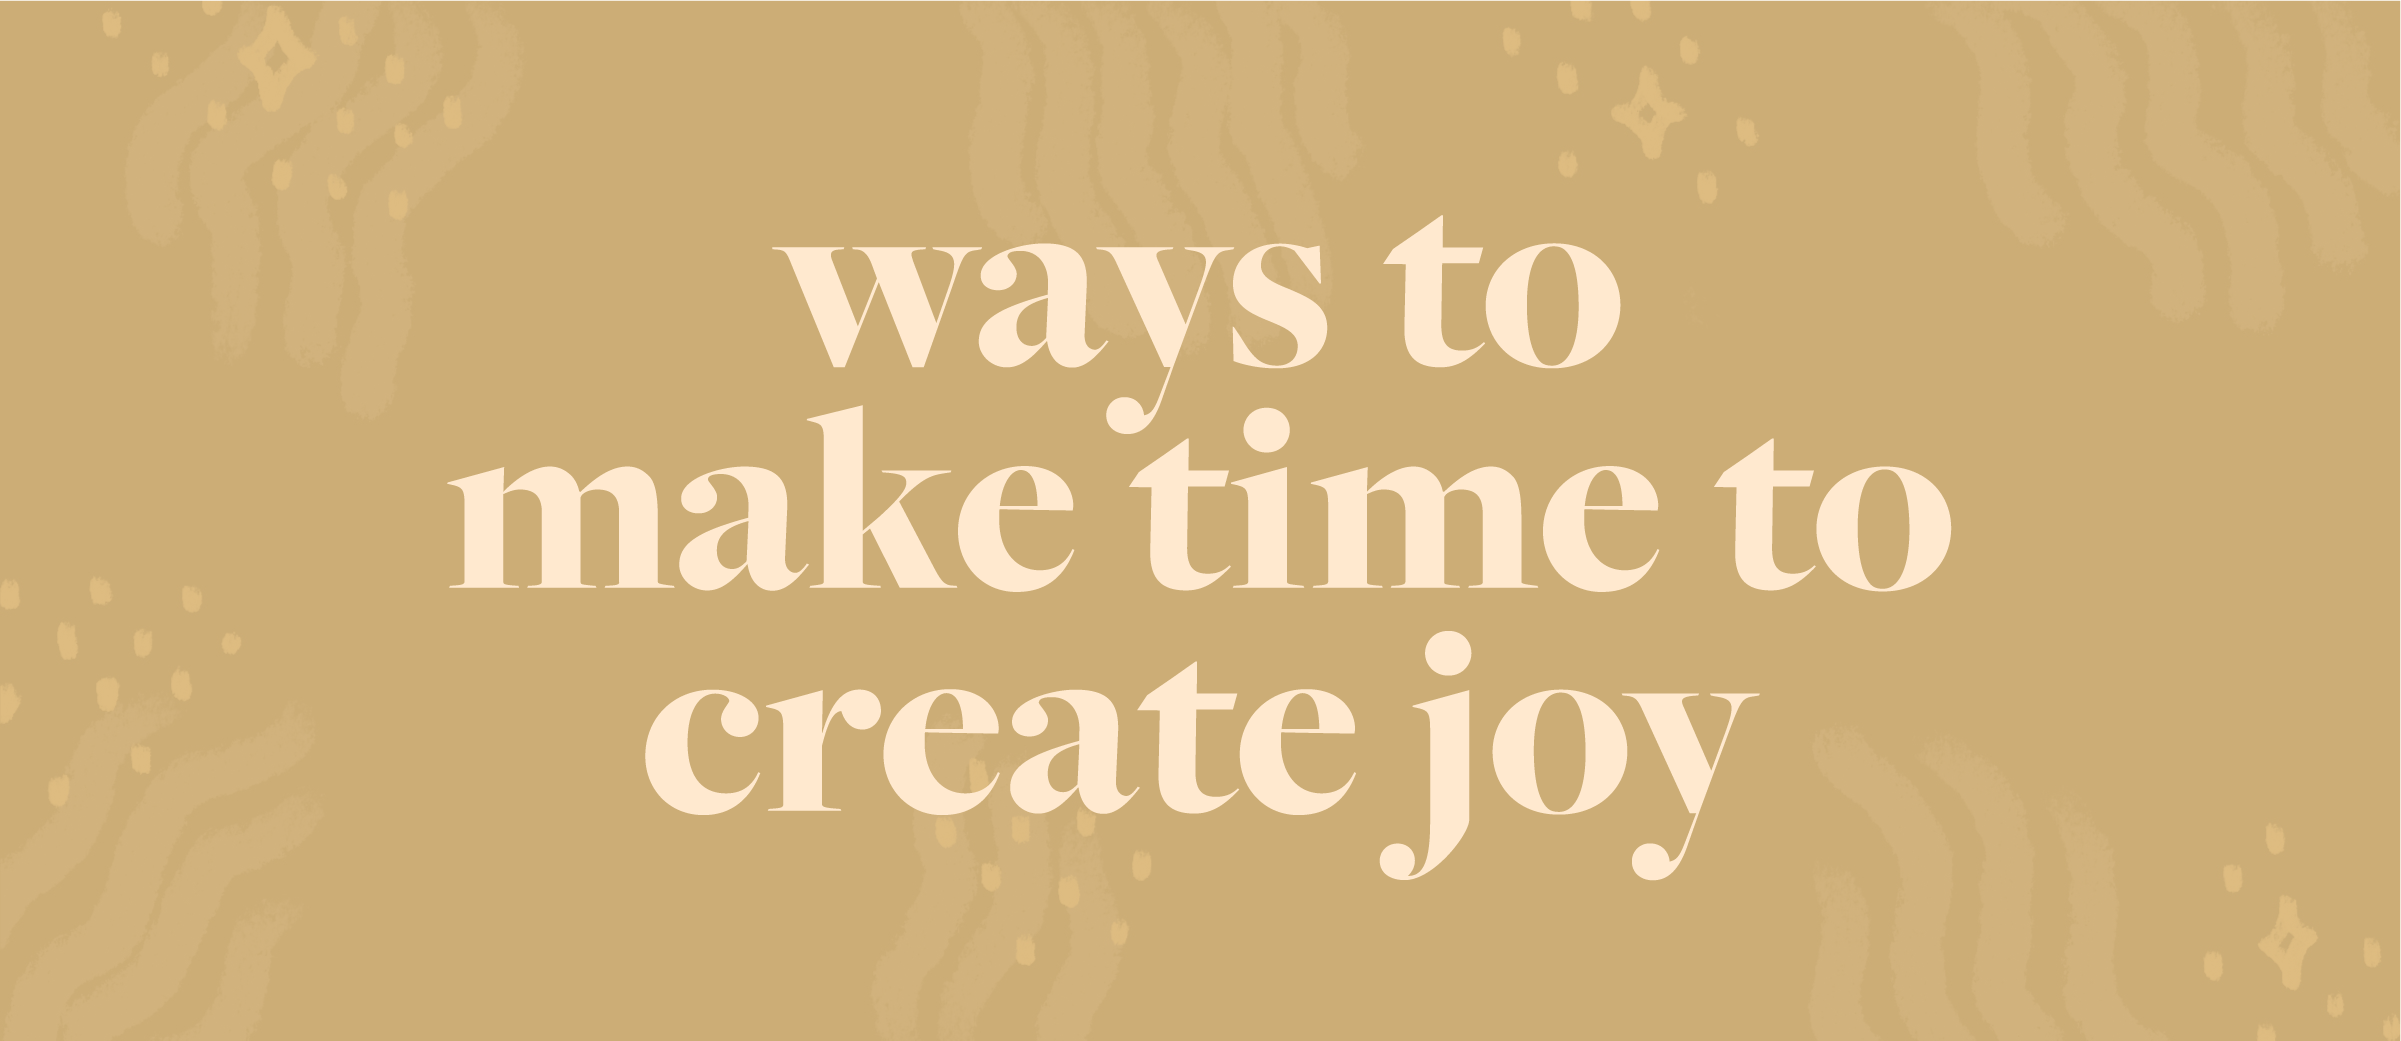 Make Time to Create Moments of Joy & Wellbeing This Holiday